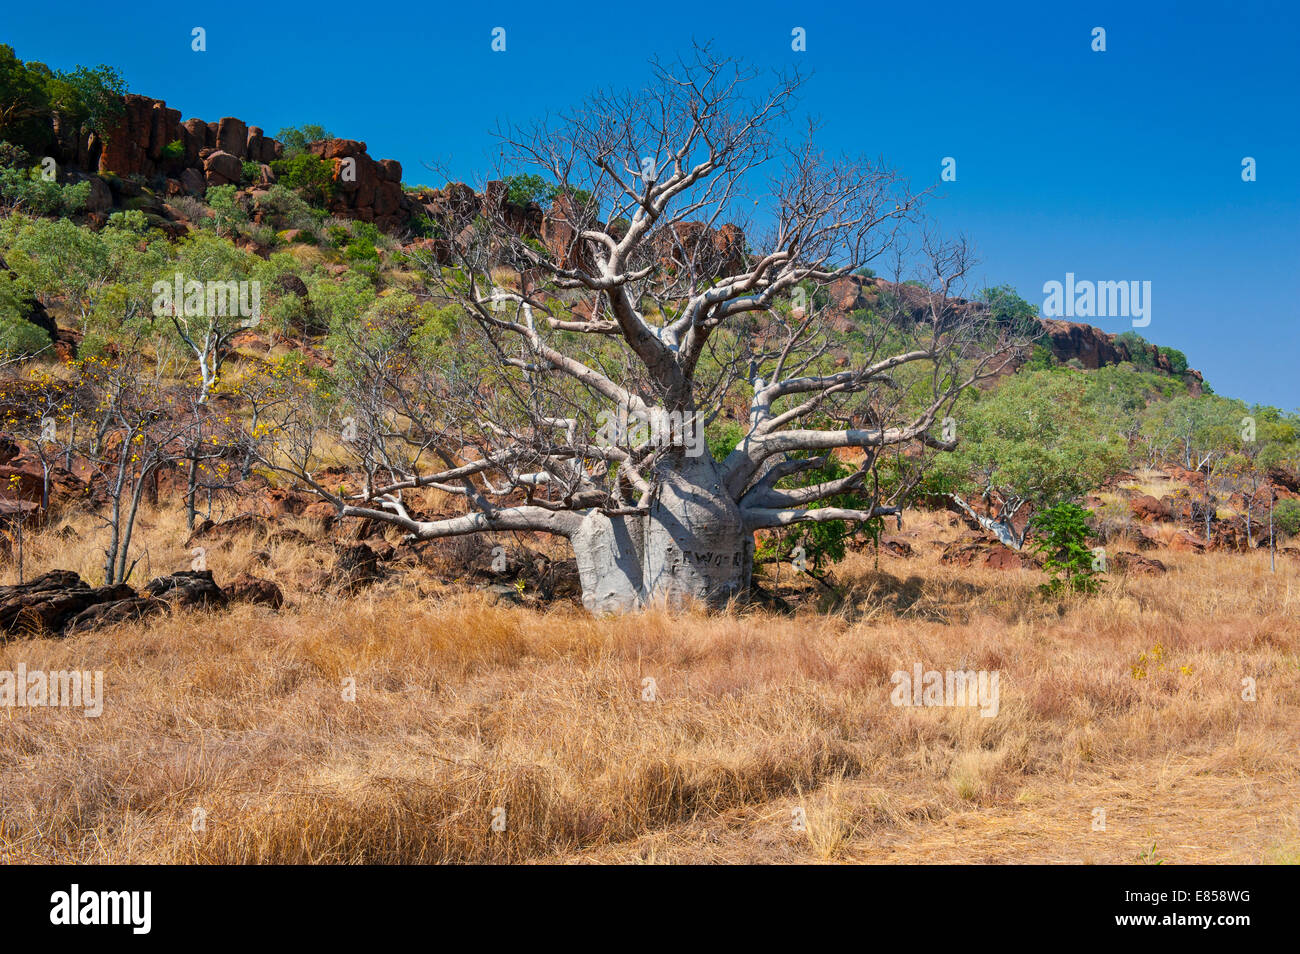 Baobab tree (Adansonia sp.) in the outback, Northern Territory, Australia - Stock Image